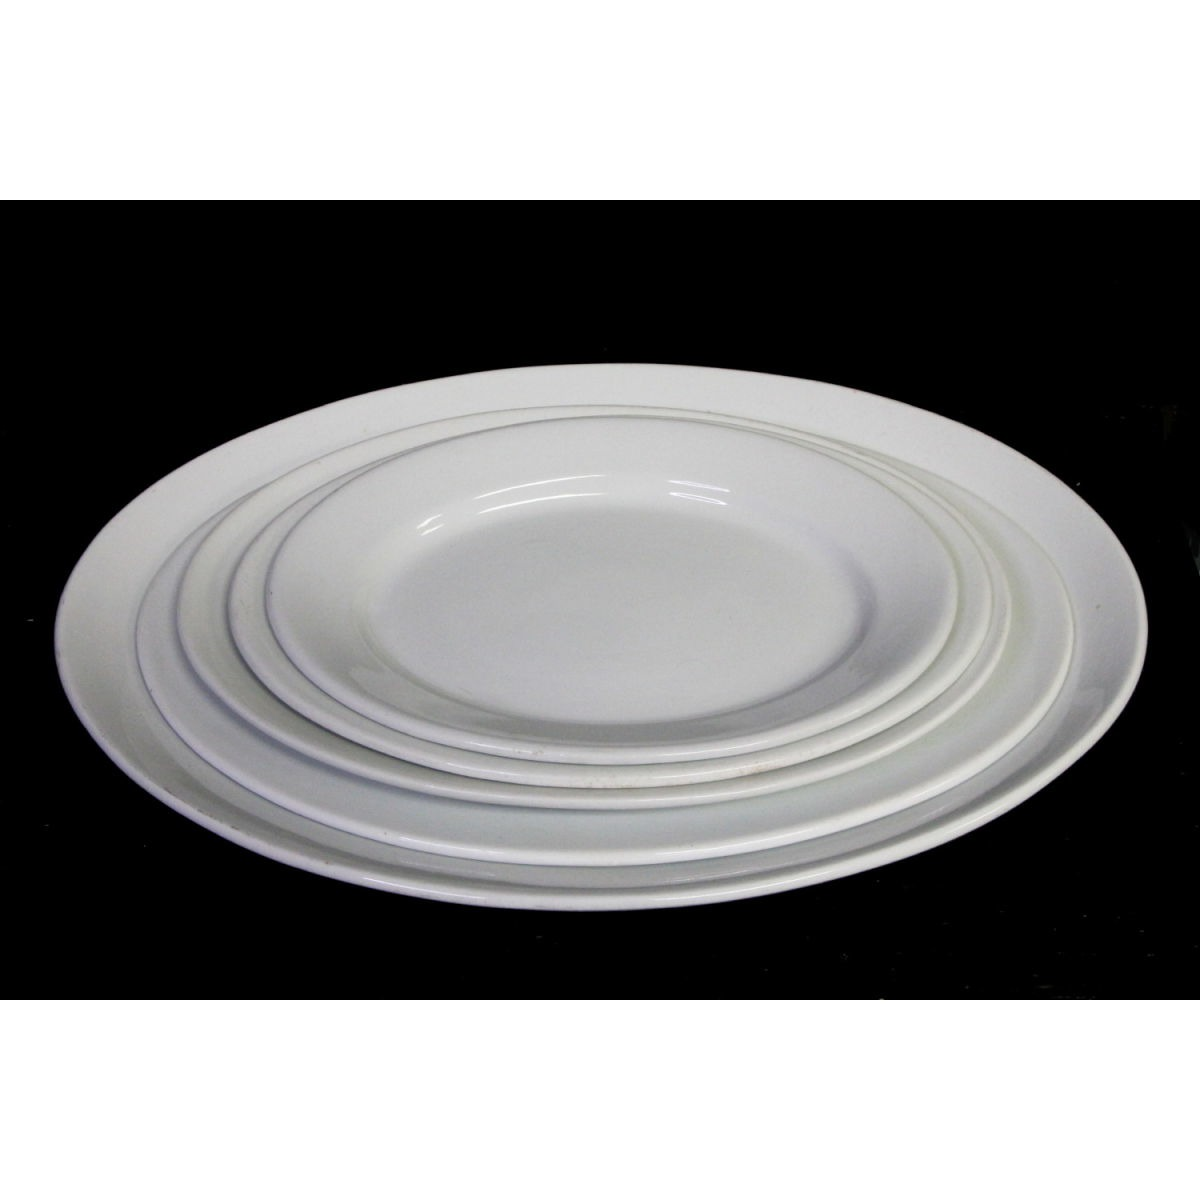 "Extra Large Plain Simple Ironstone Platter - 13.75"" x 19.25"""